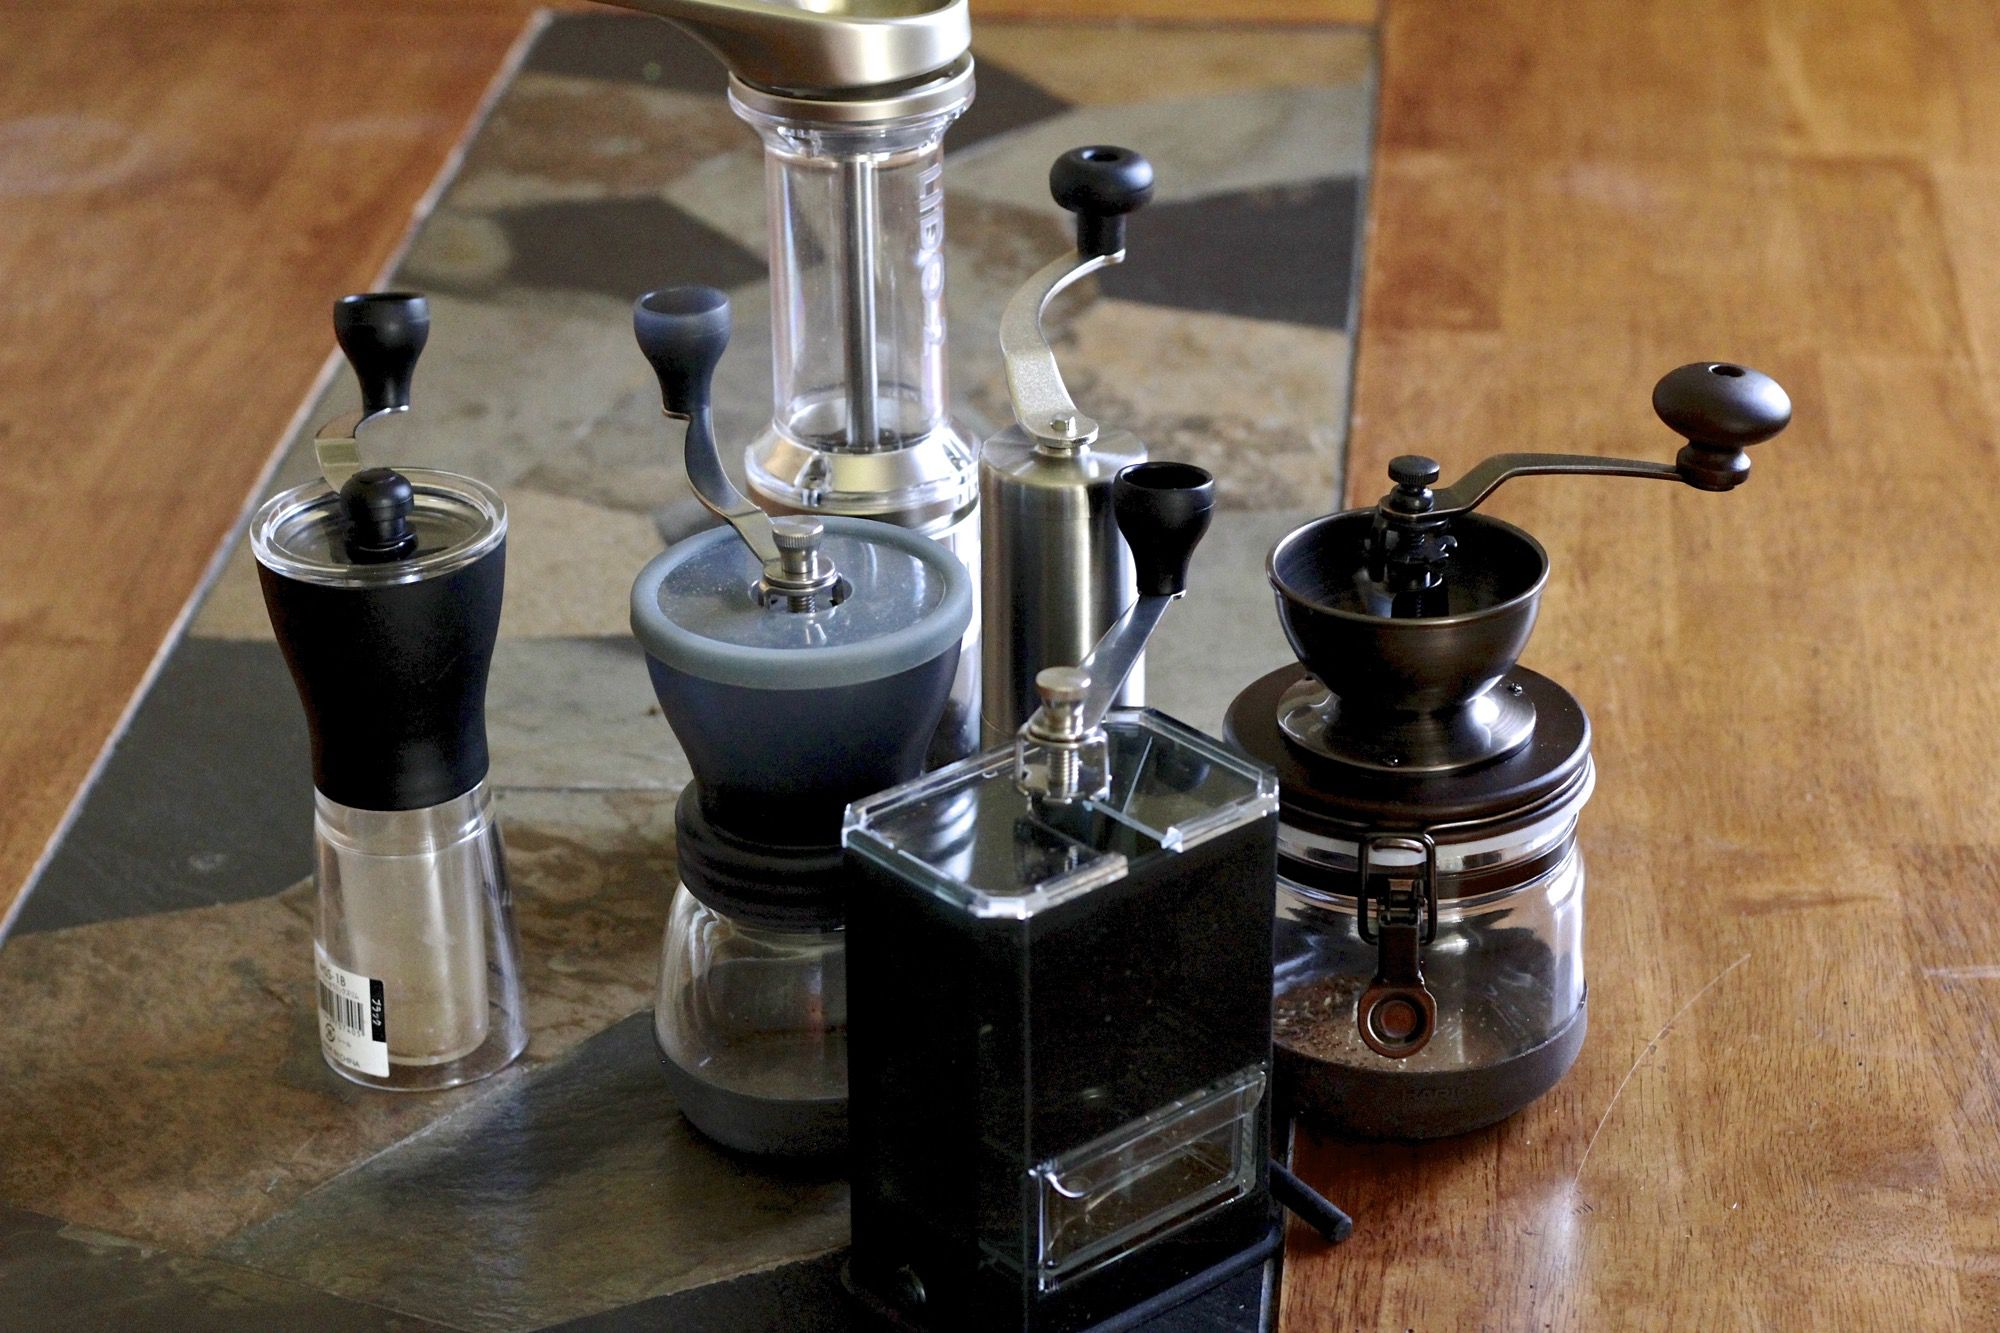 Hand Coffee Grinder ~ Gadget review six of the best hand coffee grinders eater